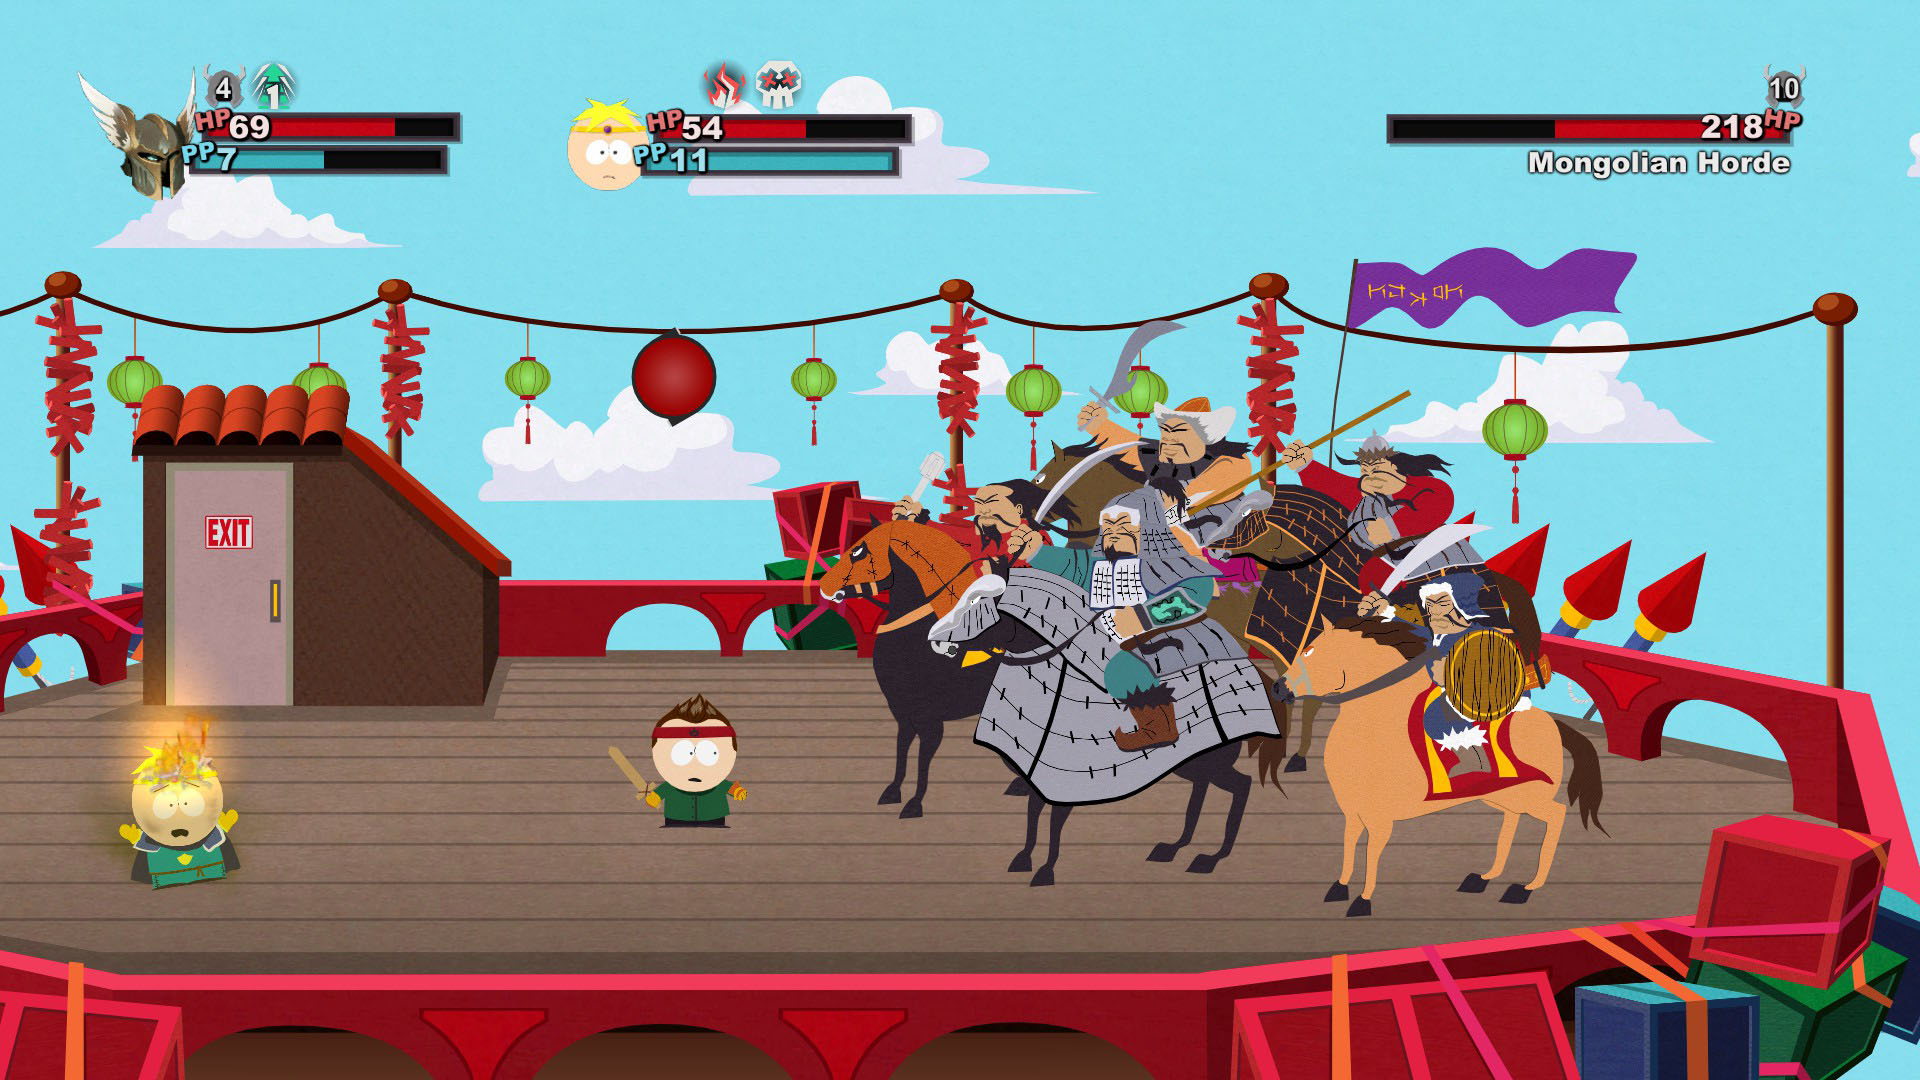 south-park-the-stick-of-truth-review-mongolians.jpg